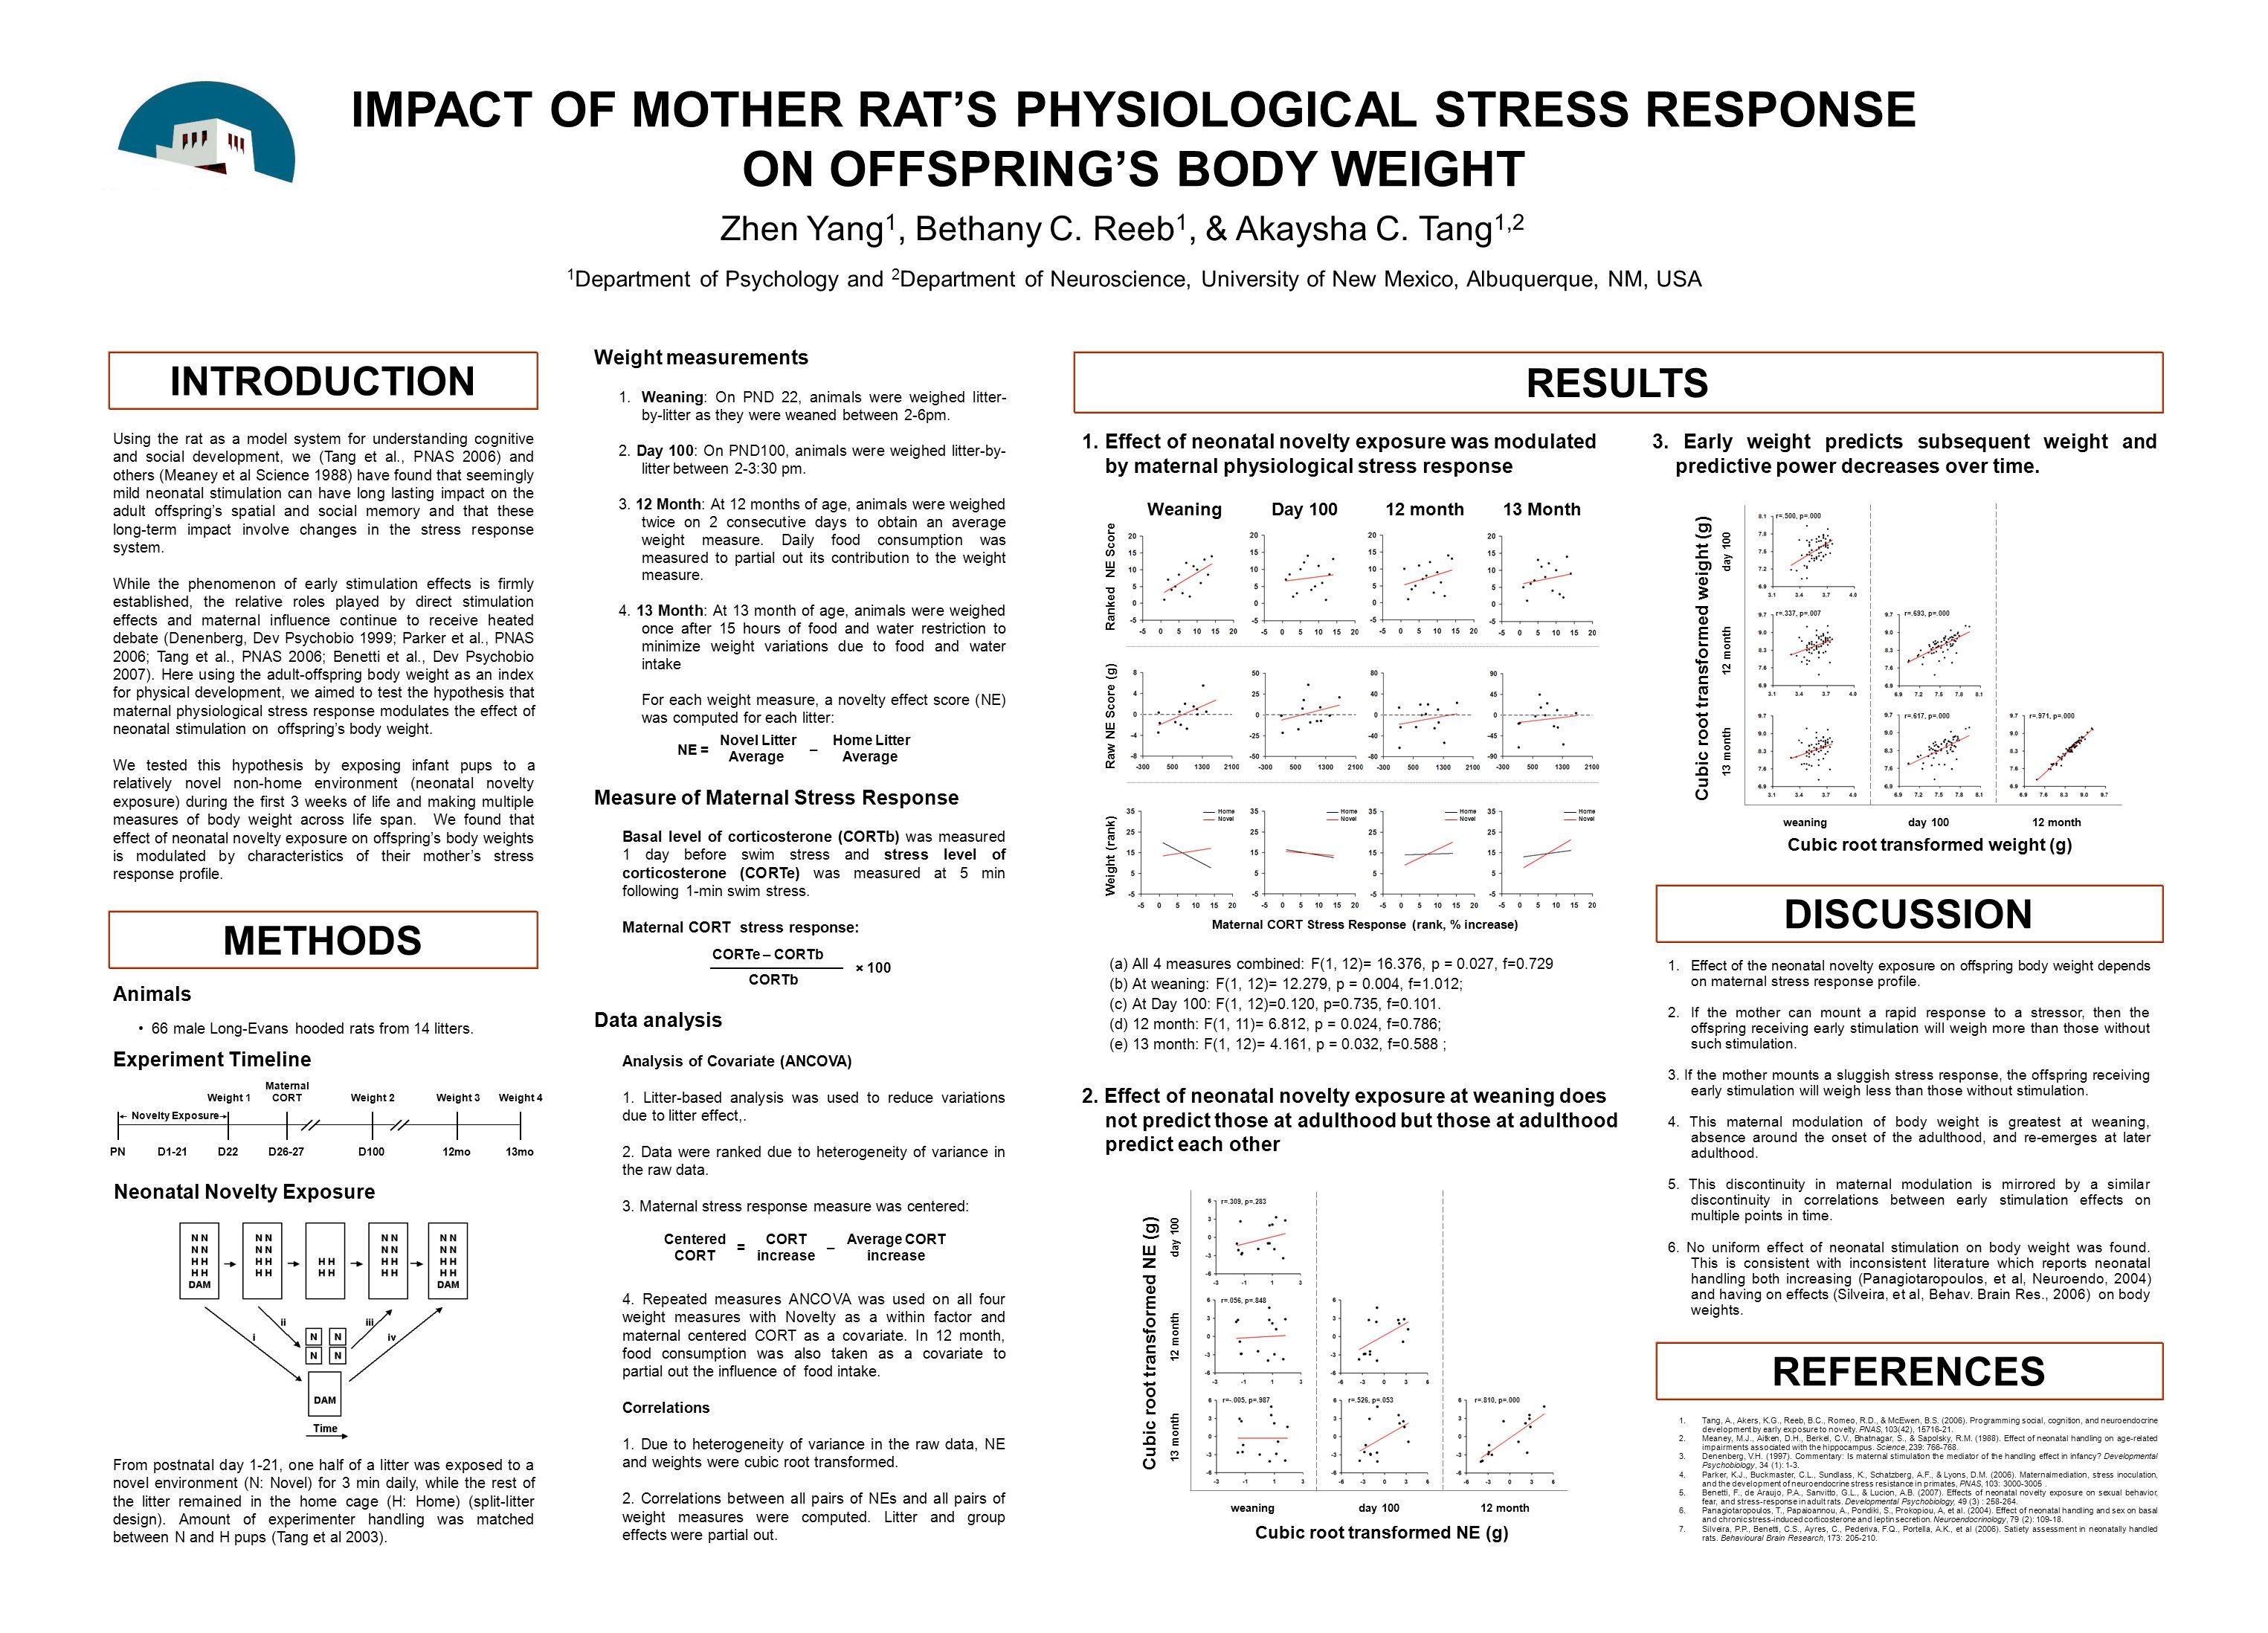 IMPACT OF MOTHER RAT'S PHYSIOLOGICAL STRESS RESPONSE ON OFFSPRING'S BODY WEIGHT 1 Department of Psychology and 2 Department of Neuroscience, Universit